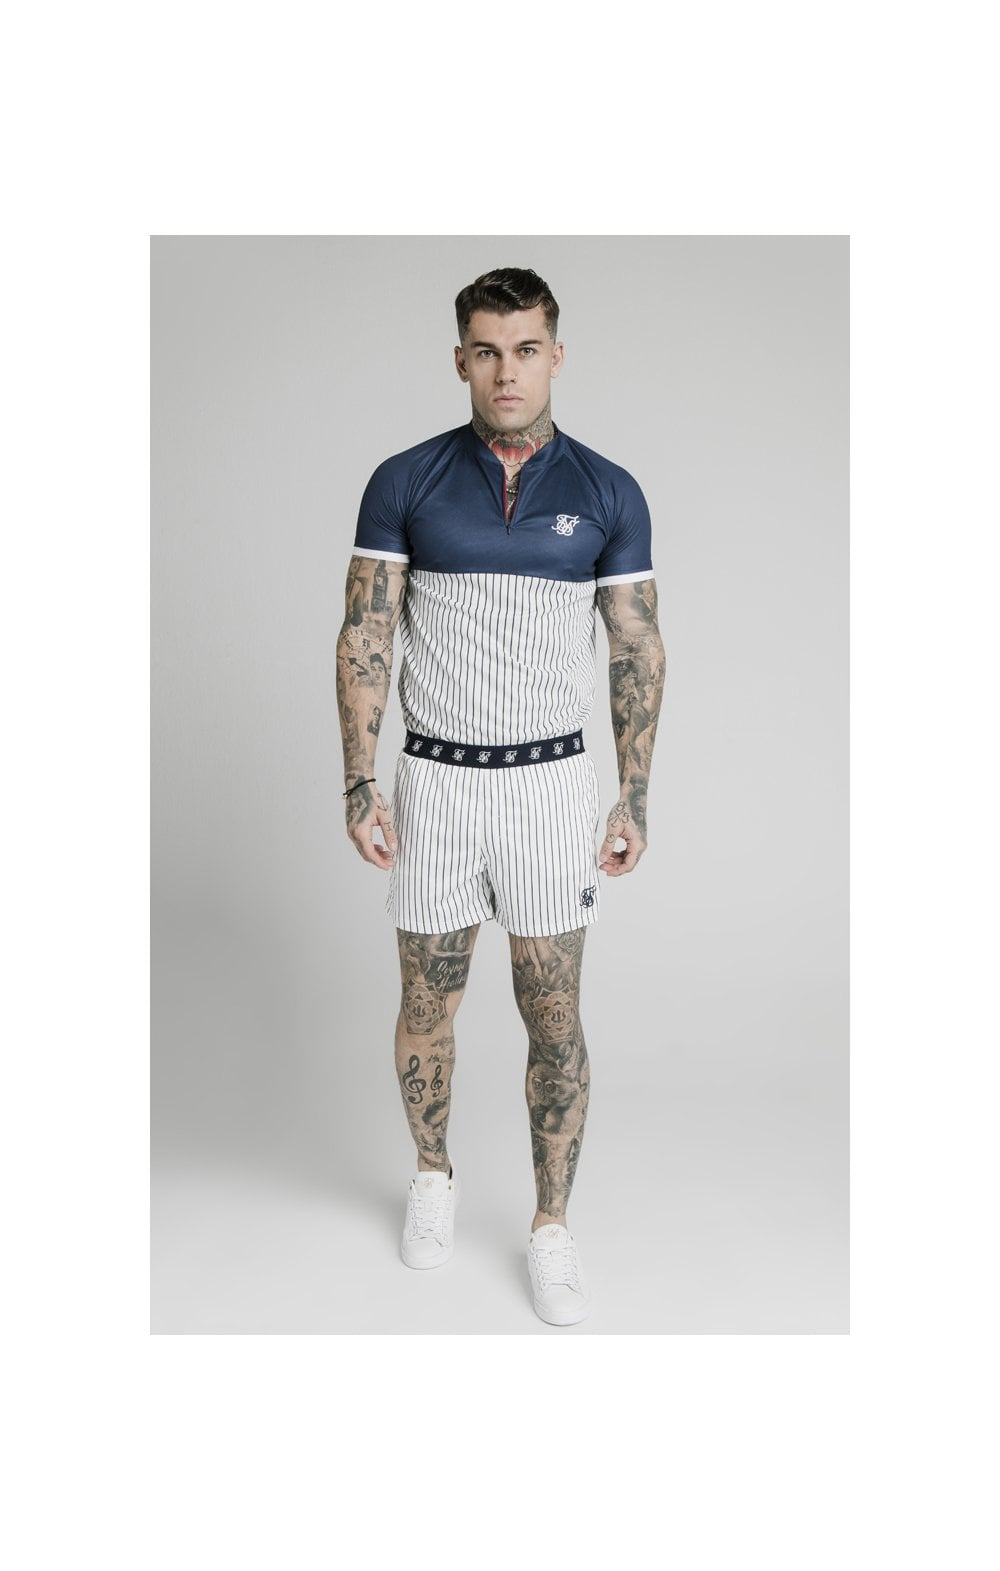 Load image into Gallery viewer, SikSilk S/S Pinstripe Baseball Tee - Navy & White (1)